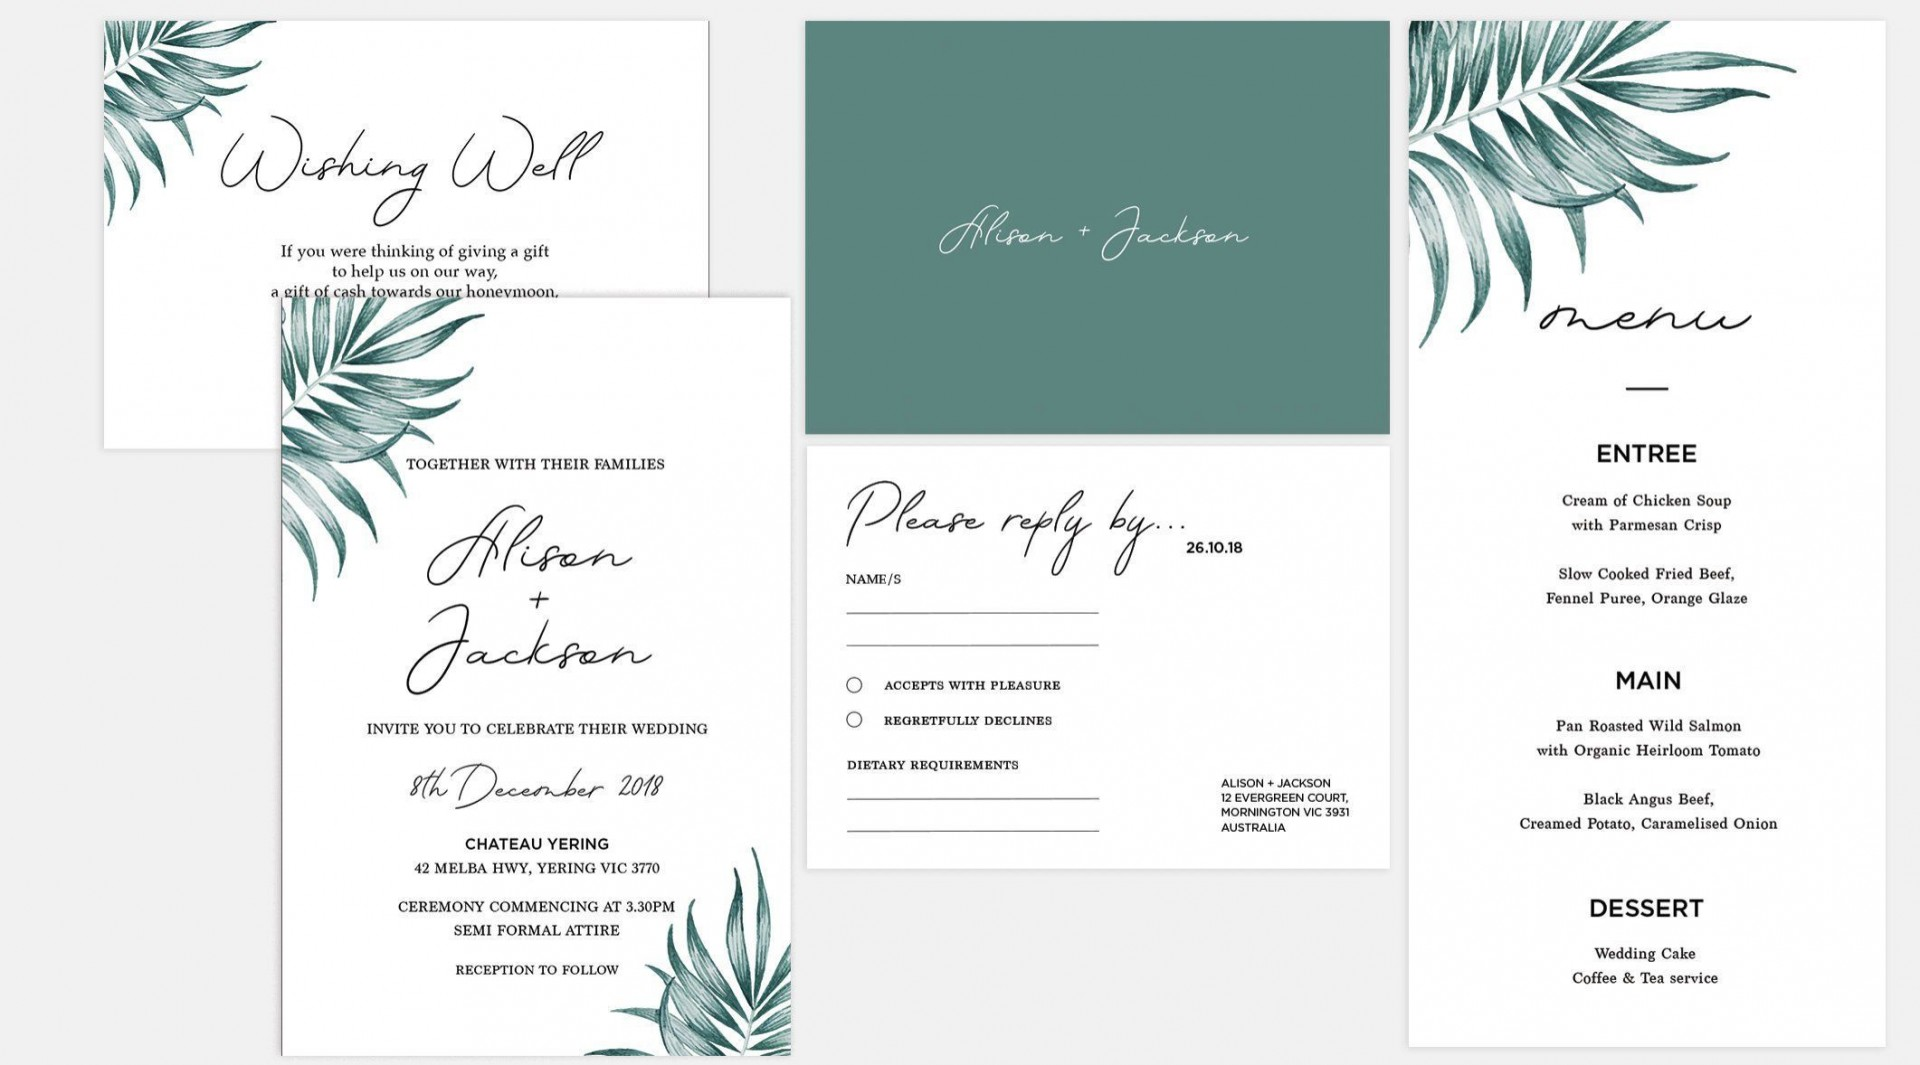 000 Archaicawful Formal Wedding Invitation Template Sample  Templates Email Format Wording Free1920